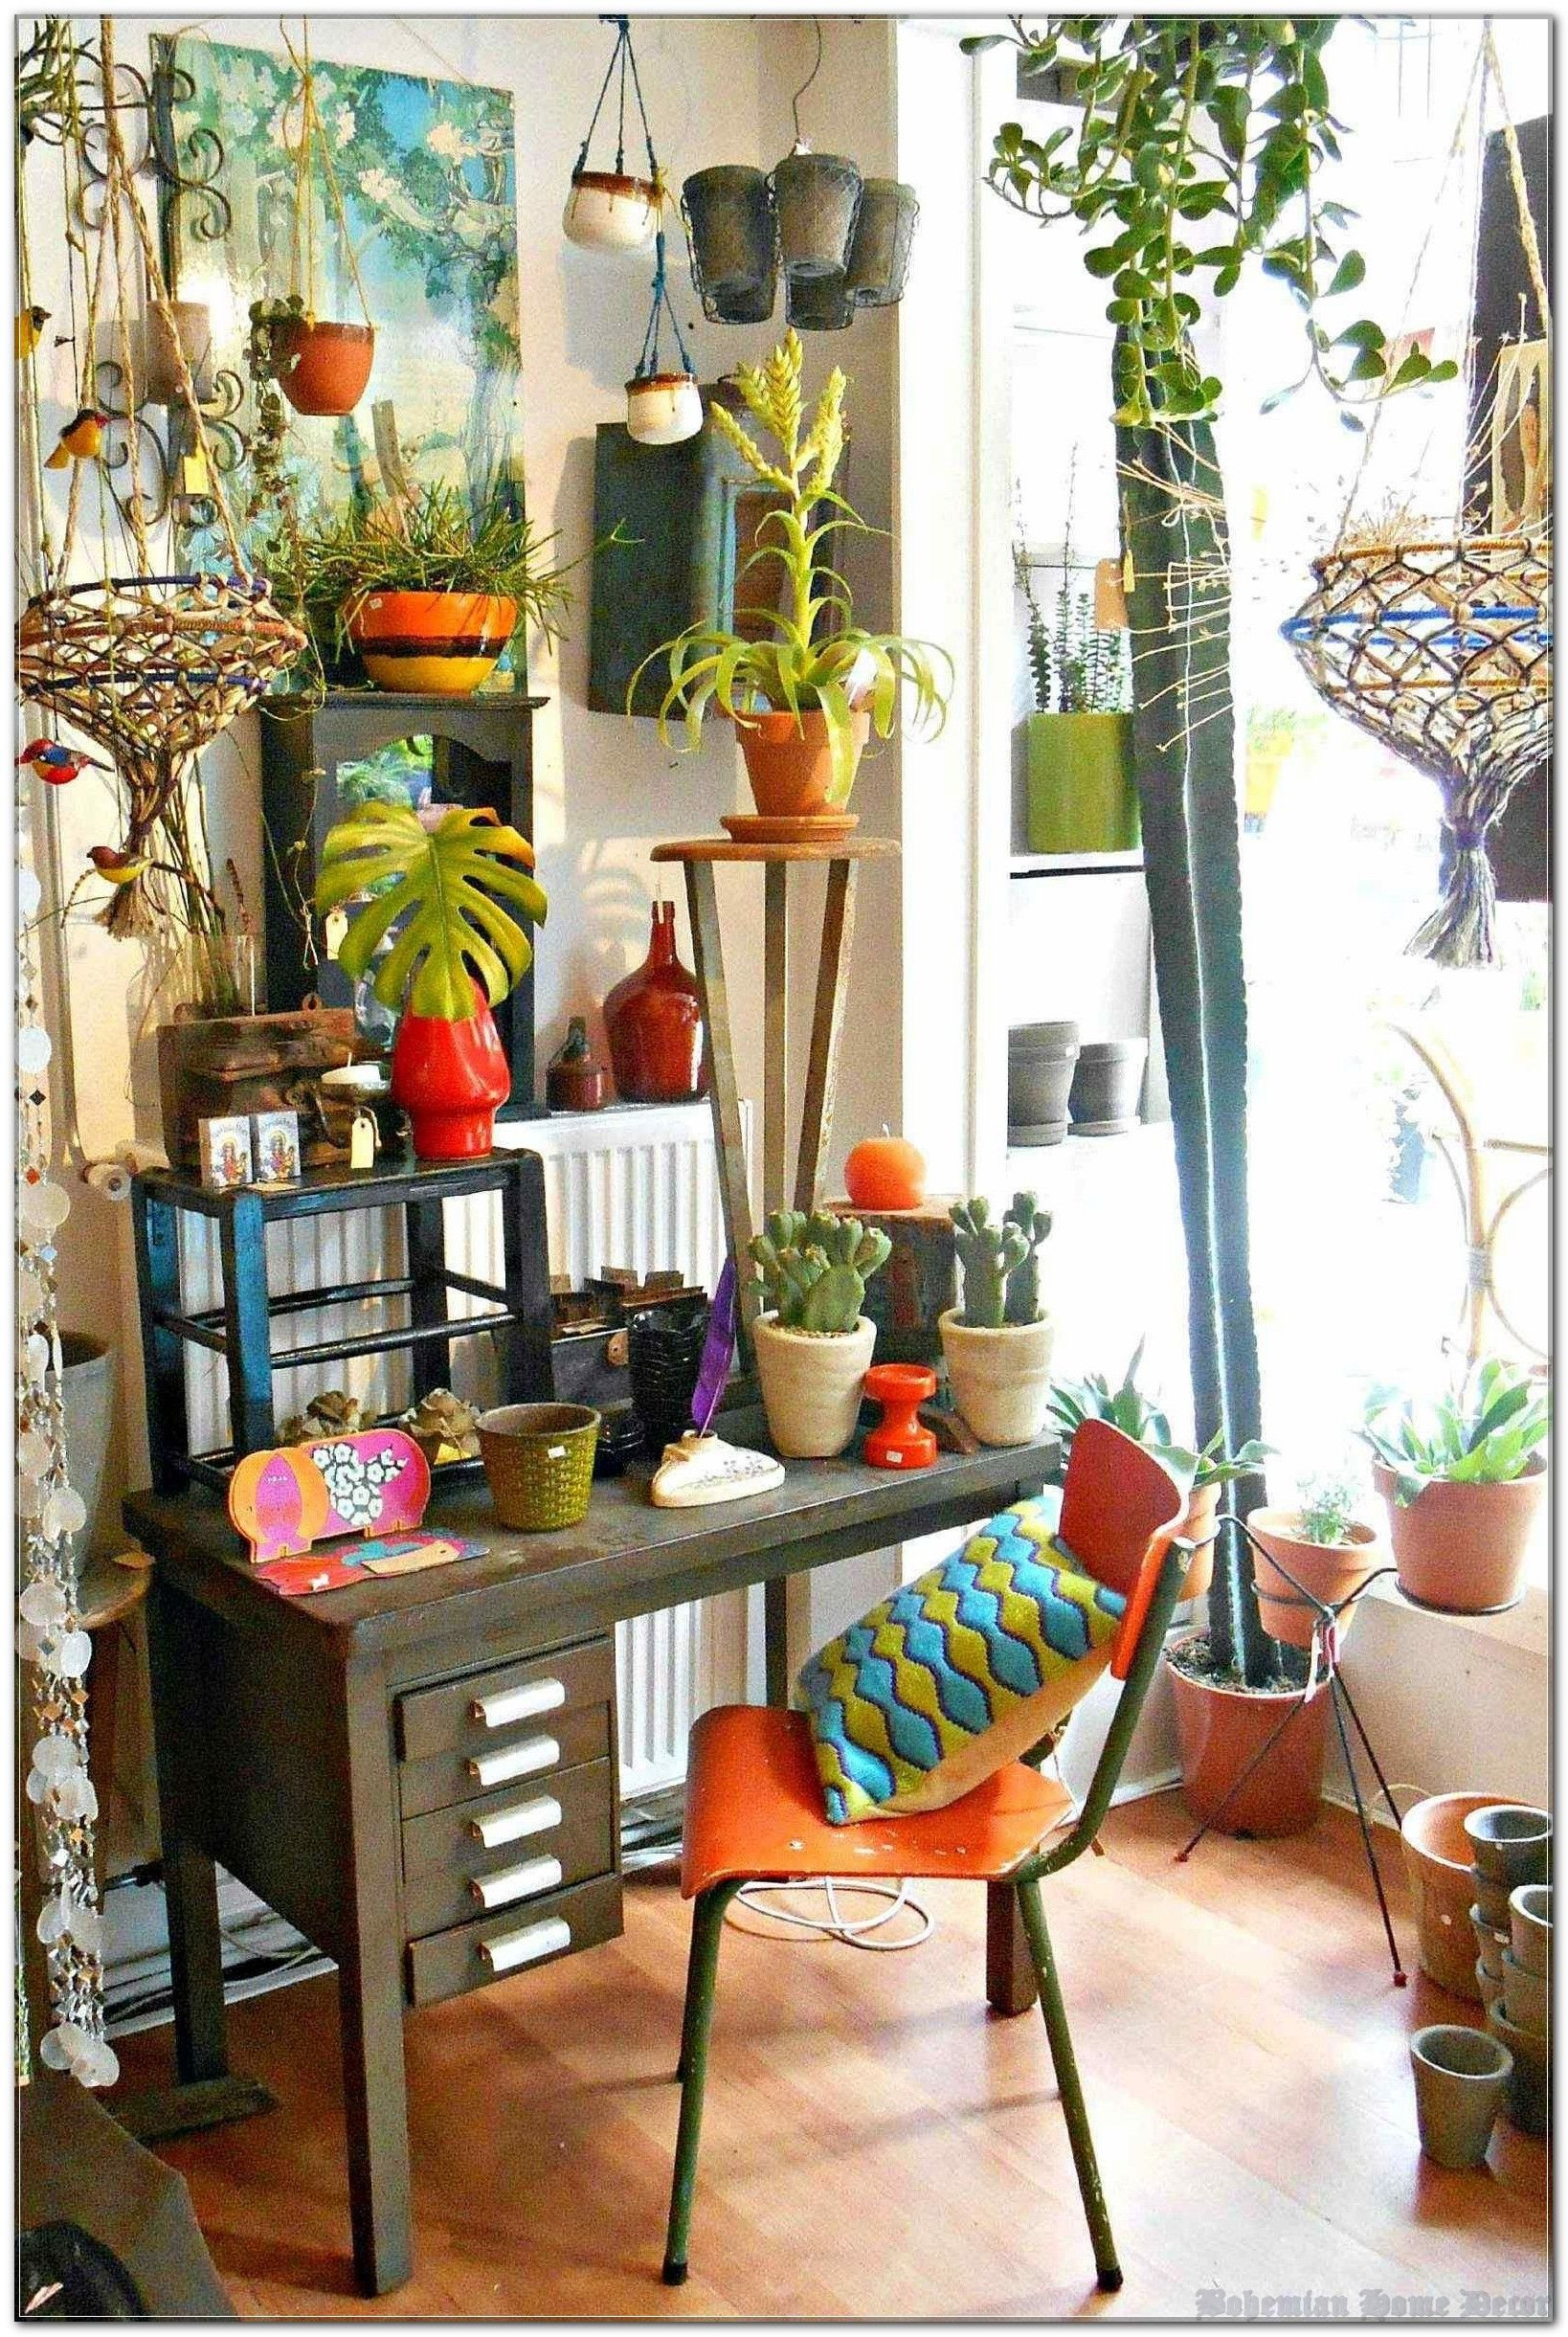 20 Bohemian Home Decor Mistakes You Should Never Make